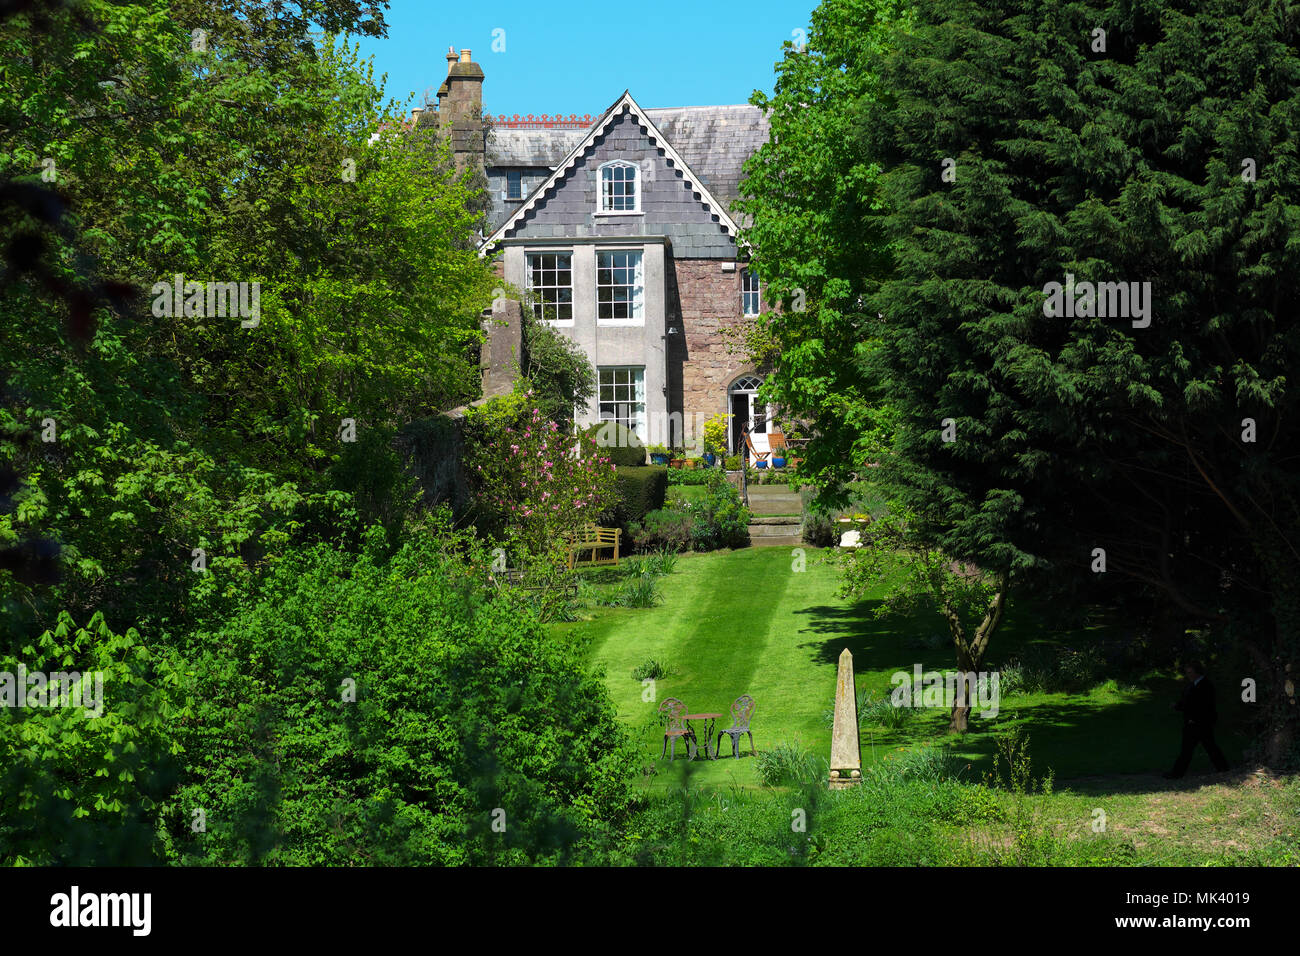 Hereford UK riverside house home and garden beside the River Wye in the city - Stock Image